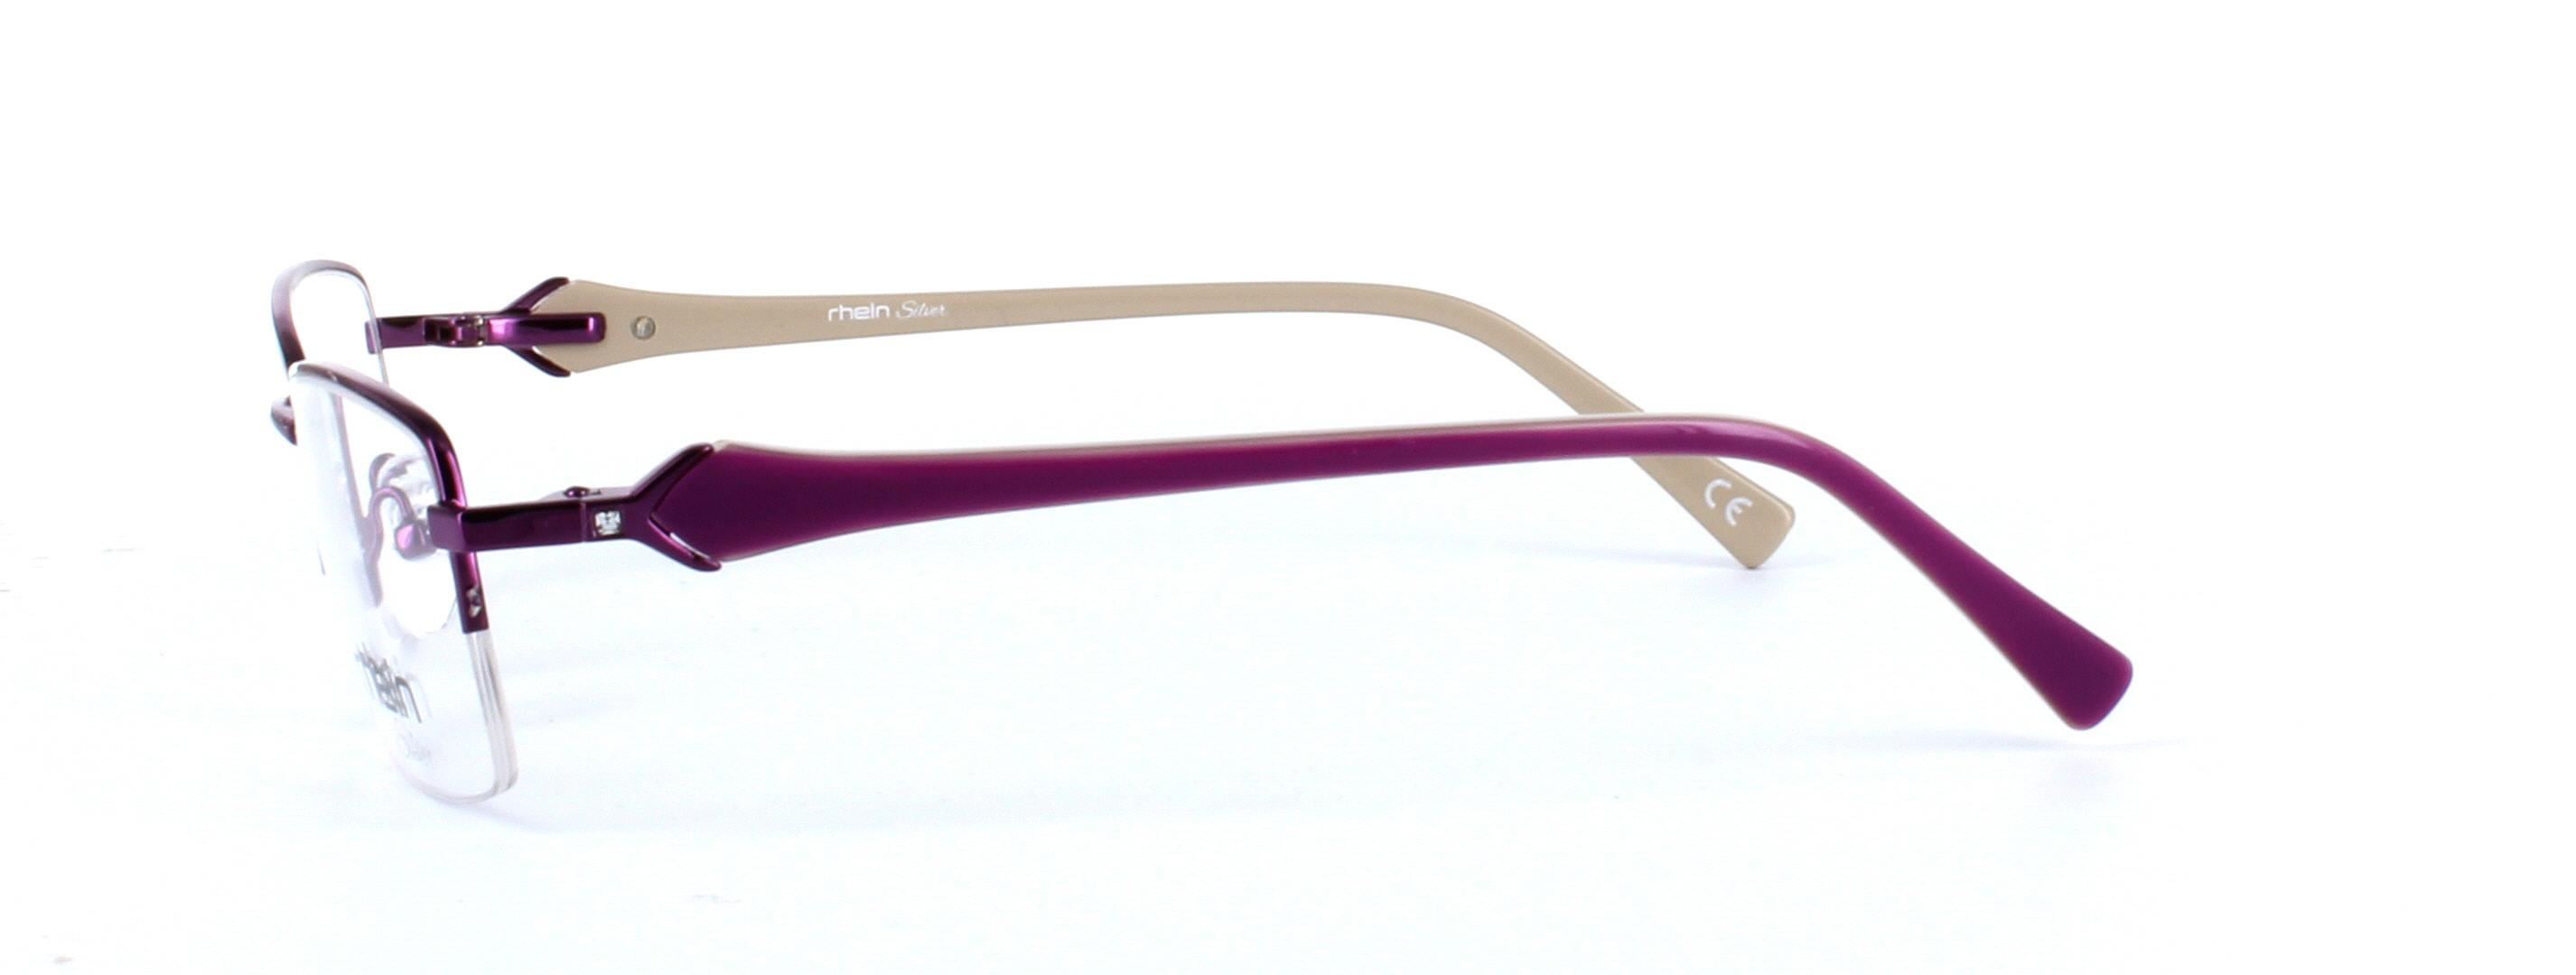 Ladies semi-rim glasses - Sloane - image 2